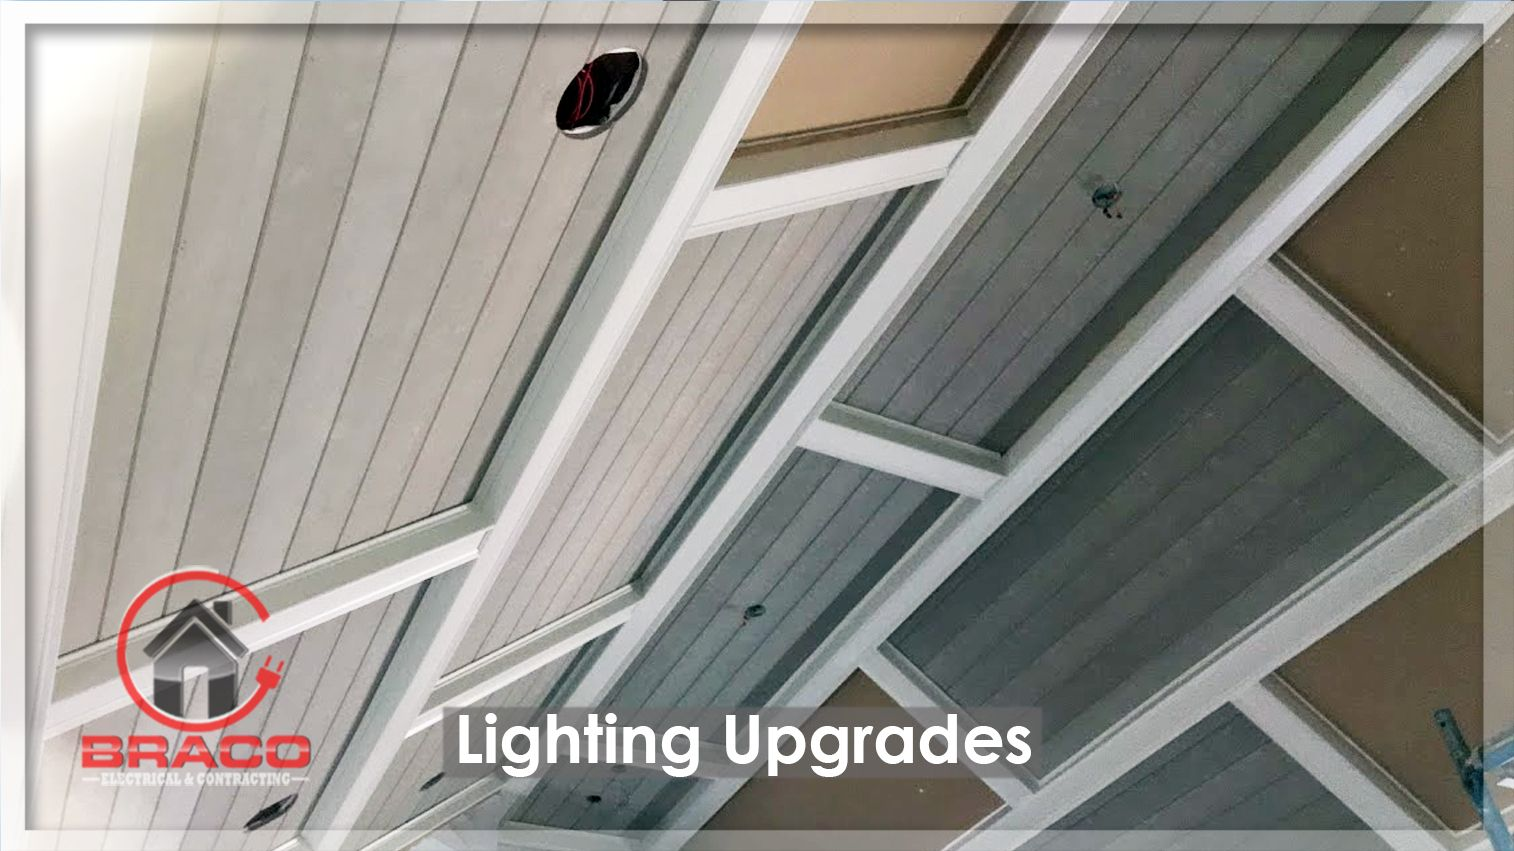 Upgrade lighting with recessed can lighting in Saint Louis